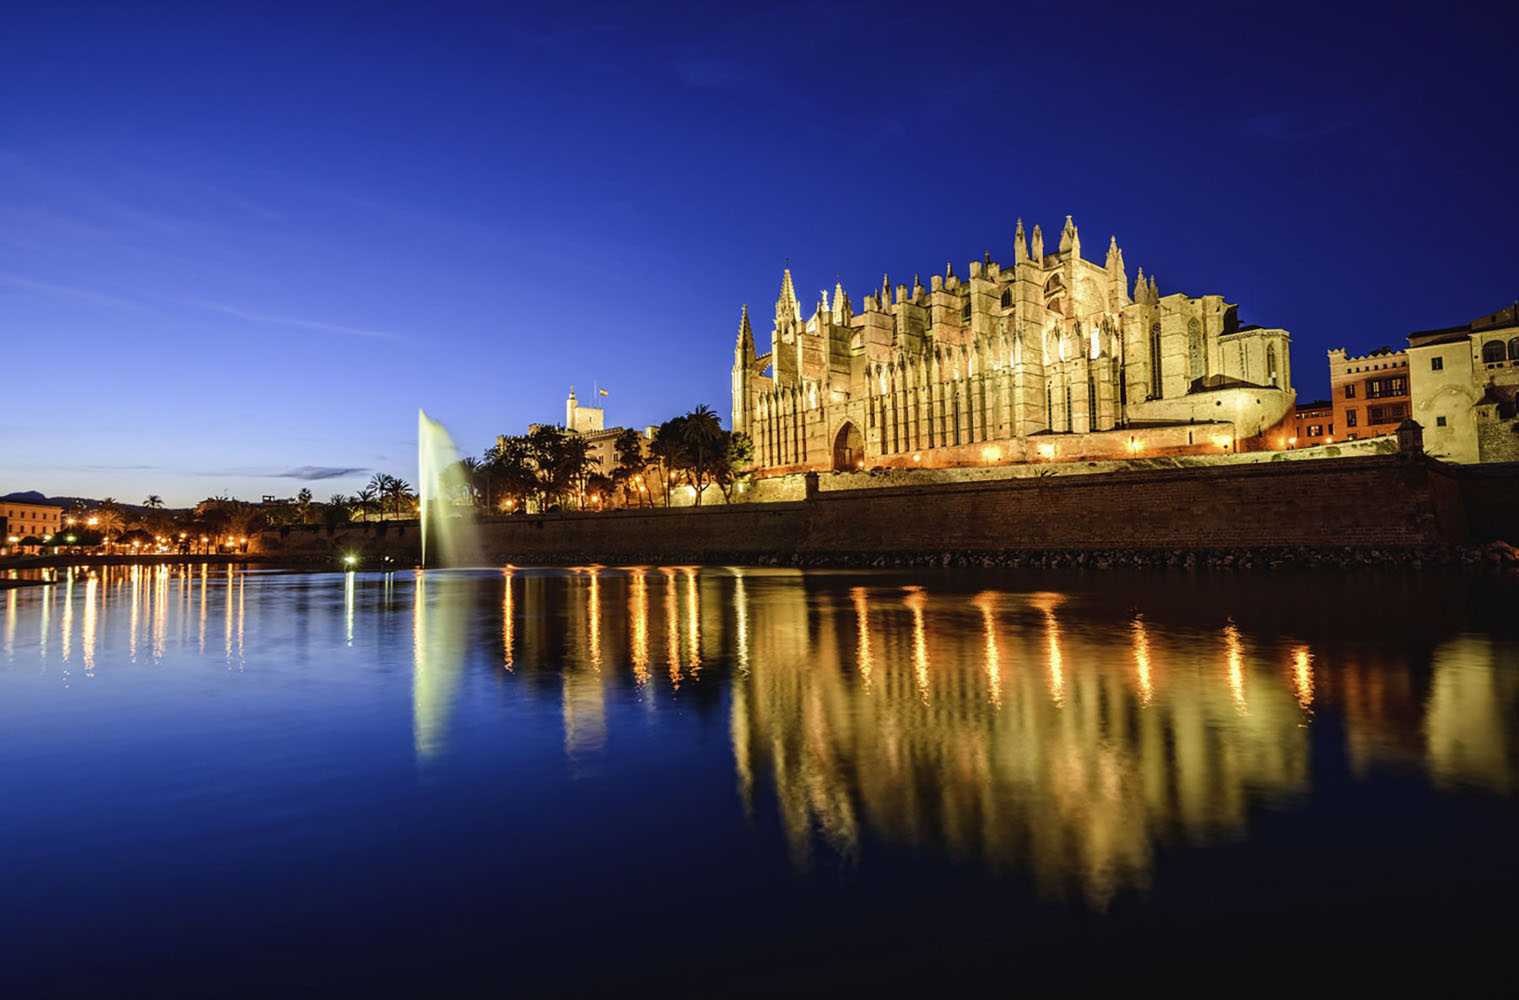 The cathedral in Palma de Mallorca, Spain.